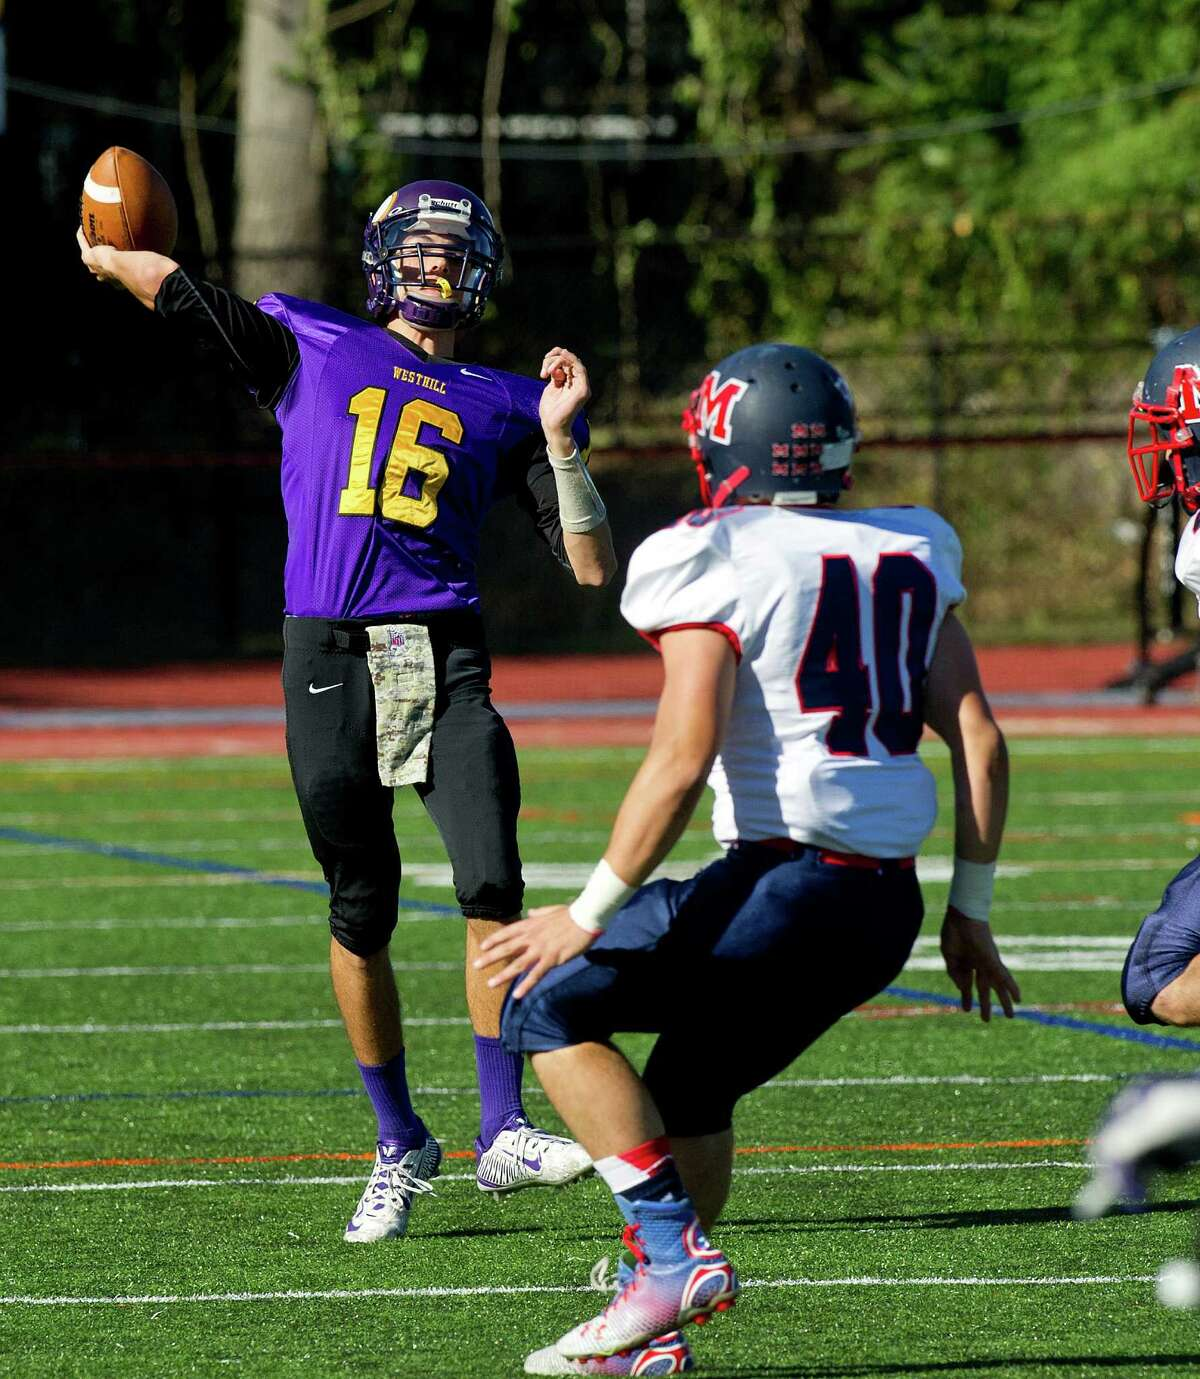 Westhill's Frankie Marcuccio throws the ball during the football game against Brien McMahon at Westhill High School on Friday, October 3, 2014.